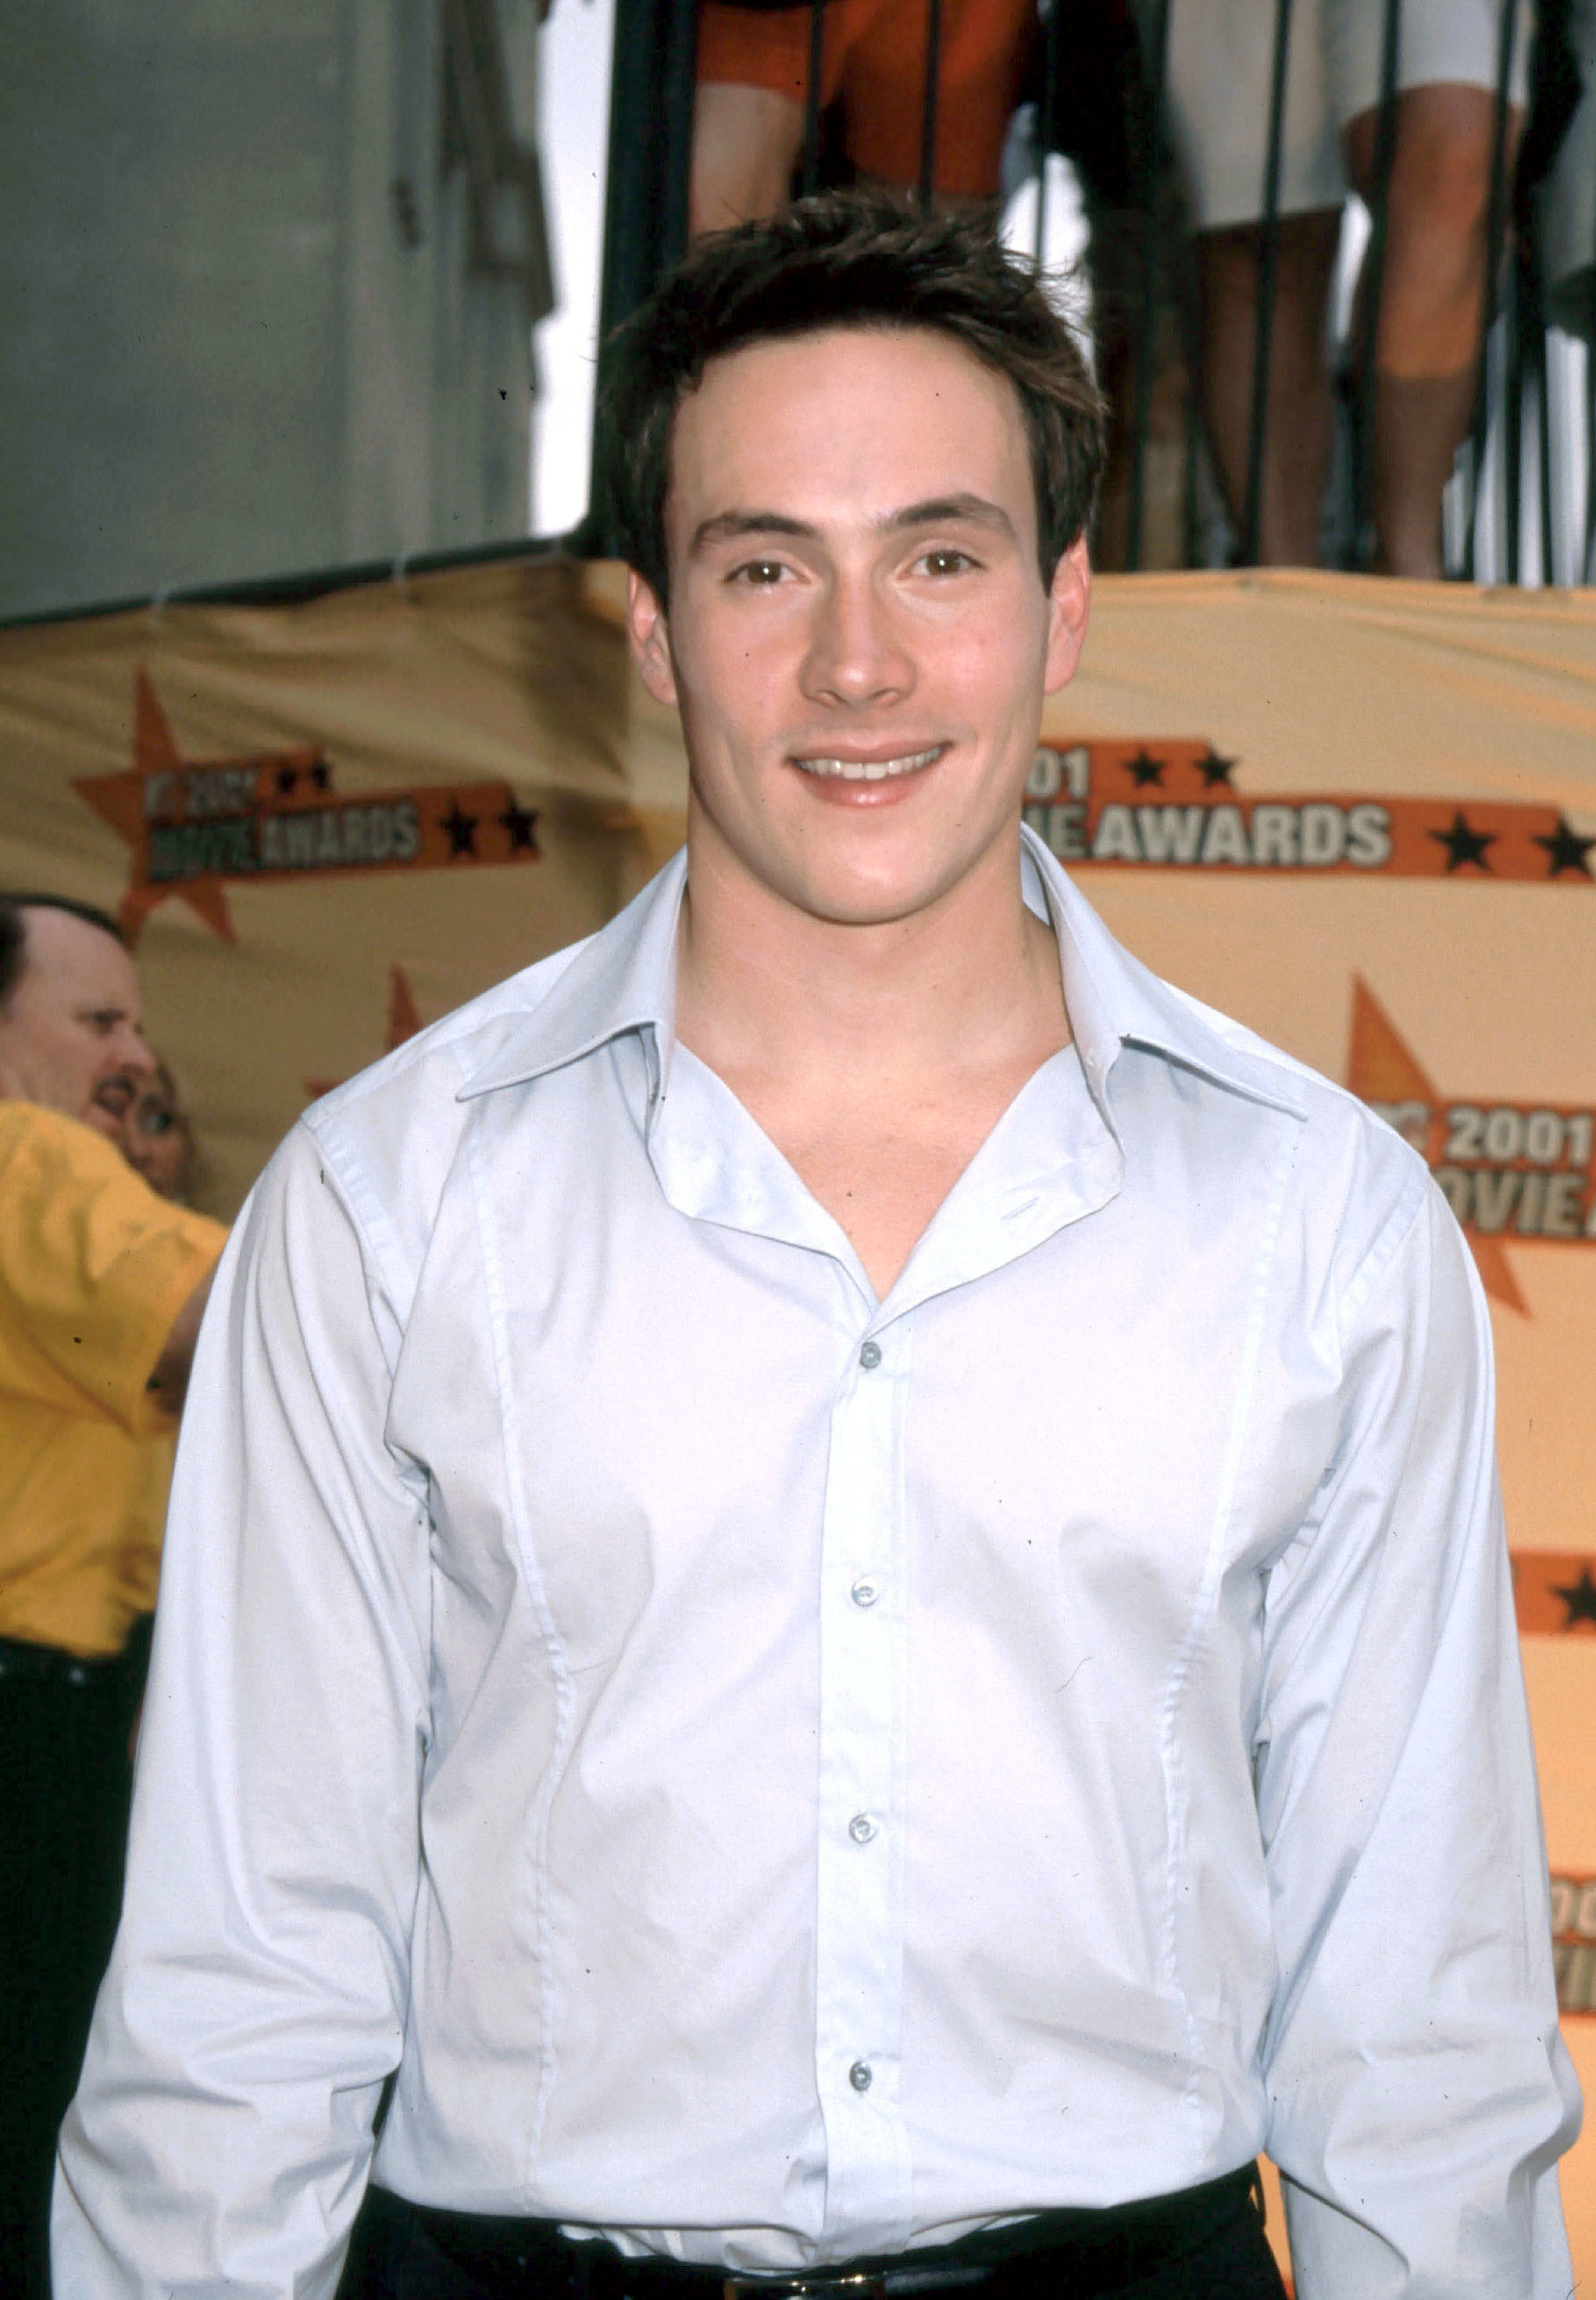 Chris Klein young - Hot guys of the 2000s - Where are they ...